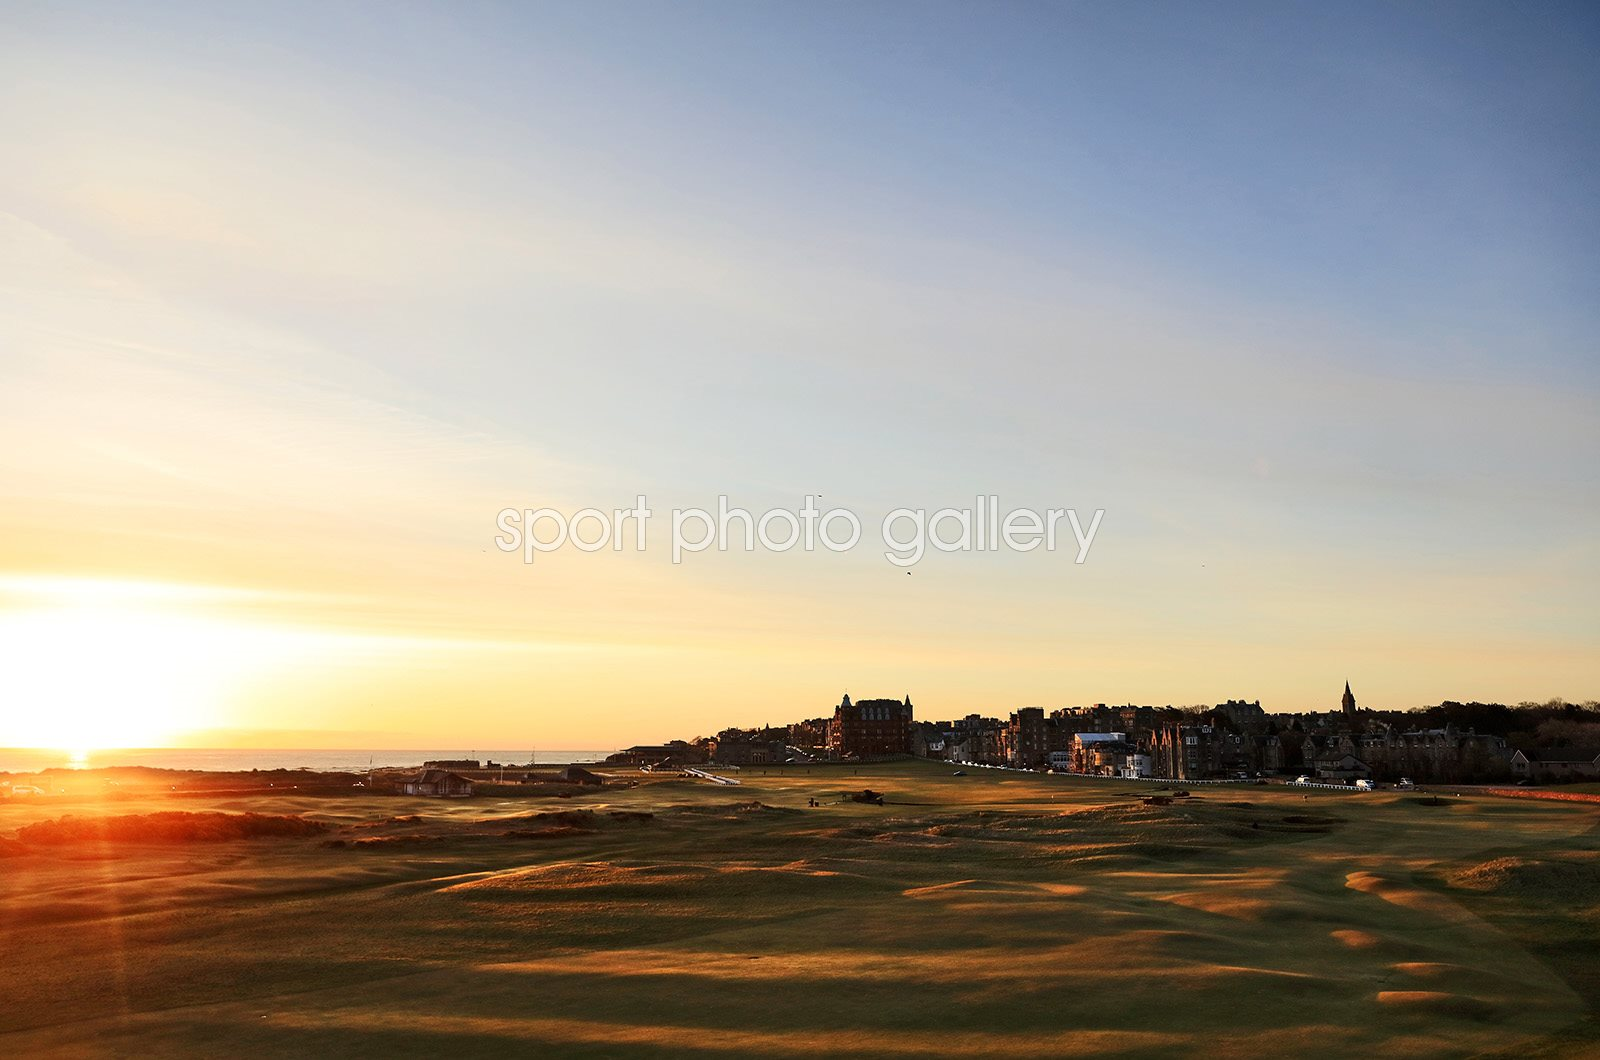 General Views of The Old Course at St Andrews